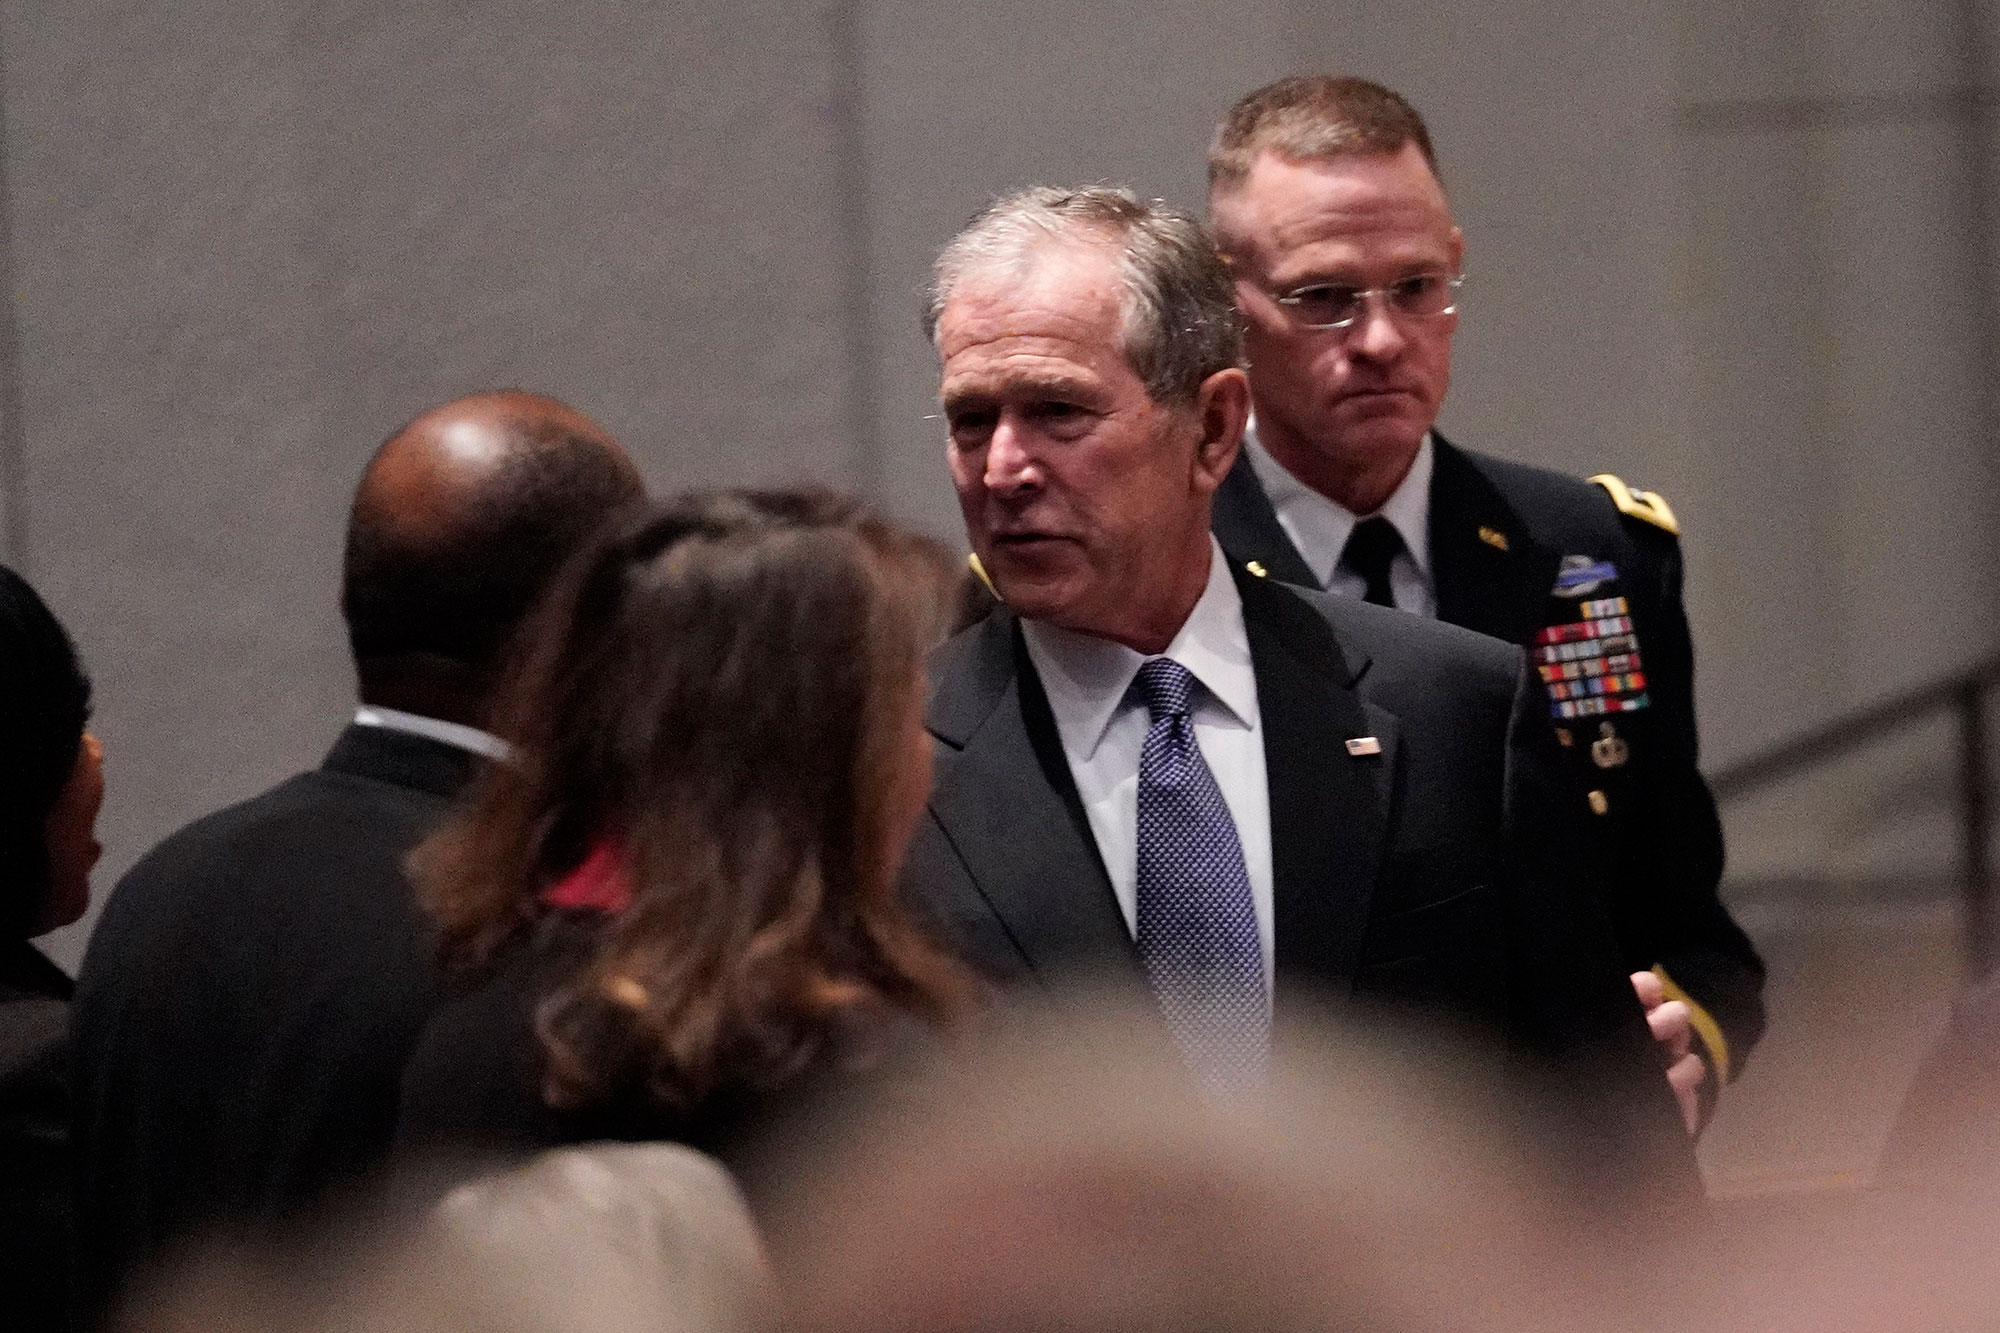 <div class='meta'><div class='origin-logo' data-origin='none'></div><span class='caption-text' data-credit='David J. Phillip, Pool/AP Photo'>Former President George W. Bush arrives for a funeral service for former President George H.W. Bush at St. Martin's Episcopal Church Thursday, Dec. 6, 2018, in Houston.</span></div>